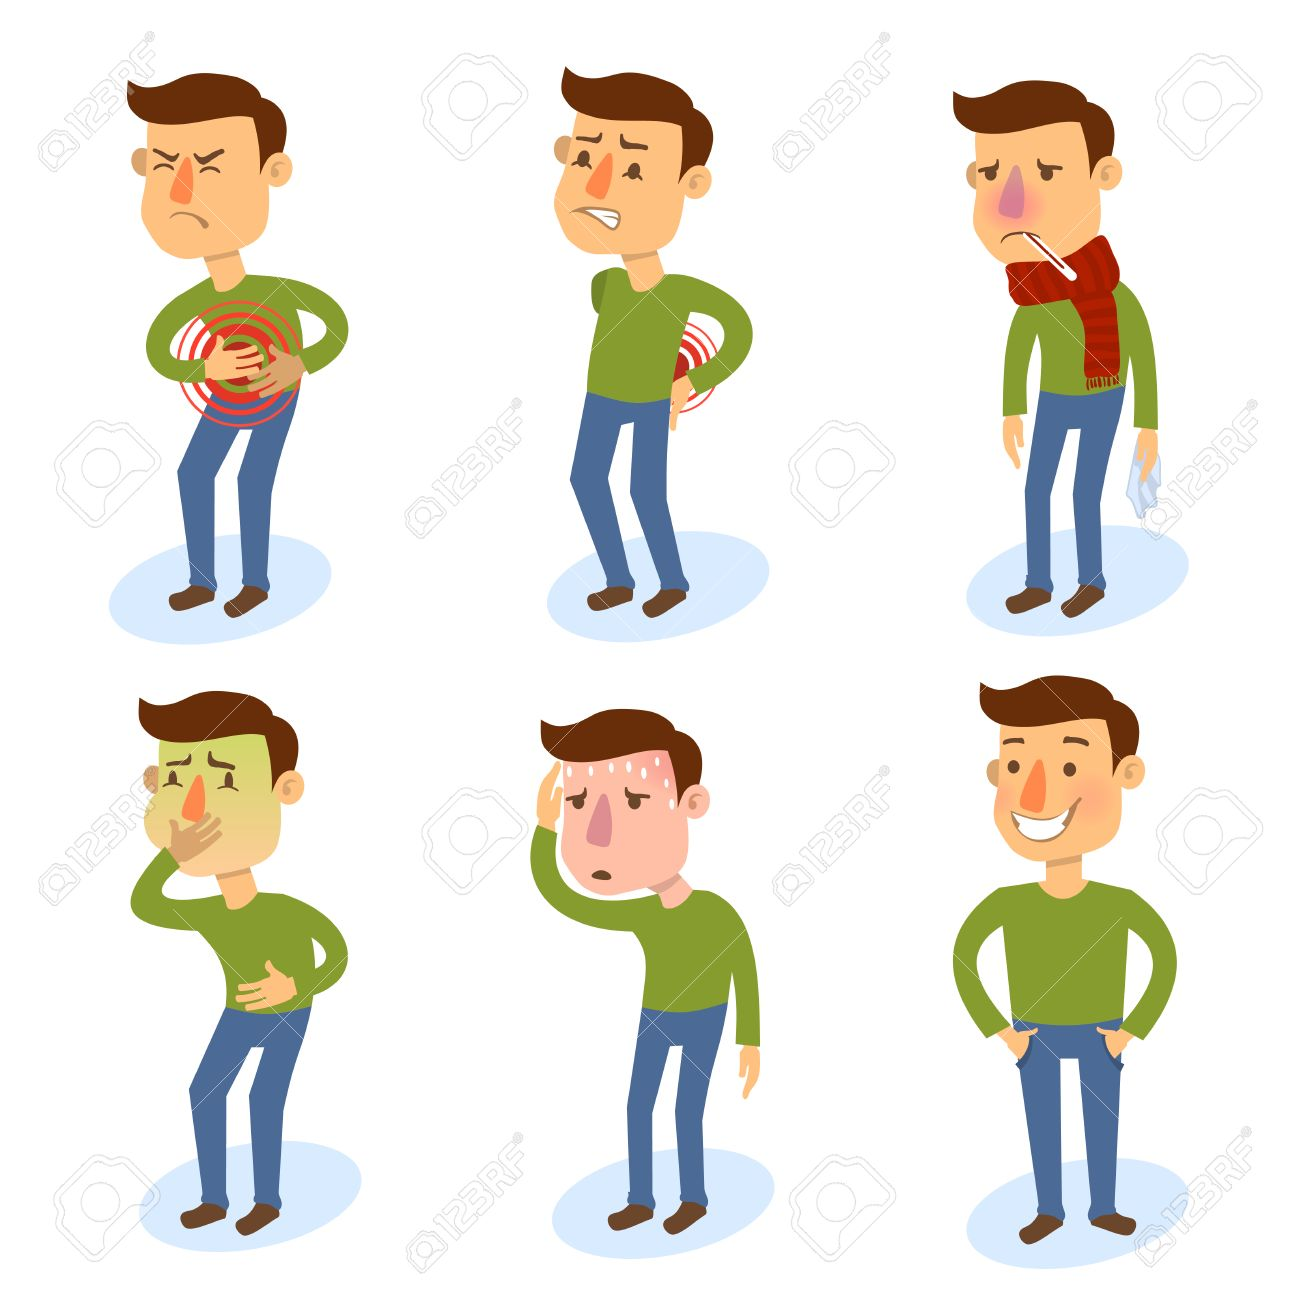 Sick characters set of people with pain and diseases isolated vector illustration. - 31011004